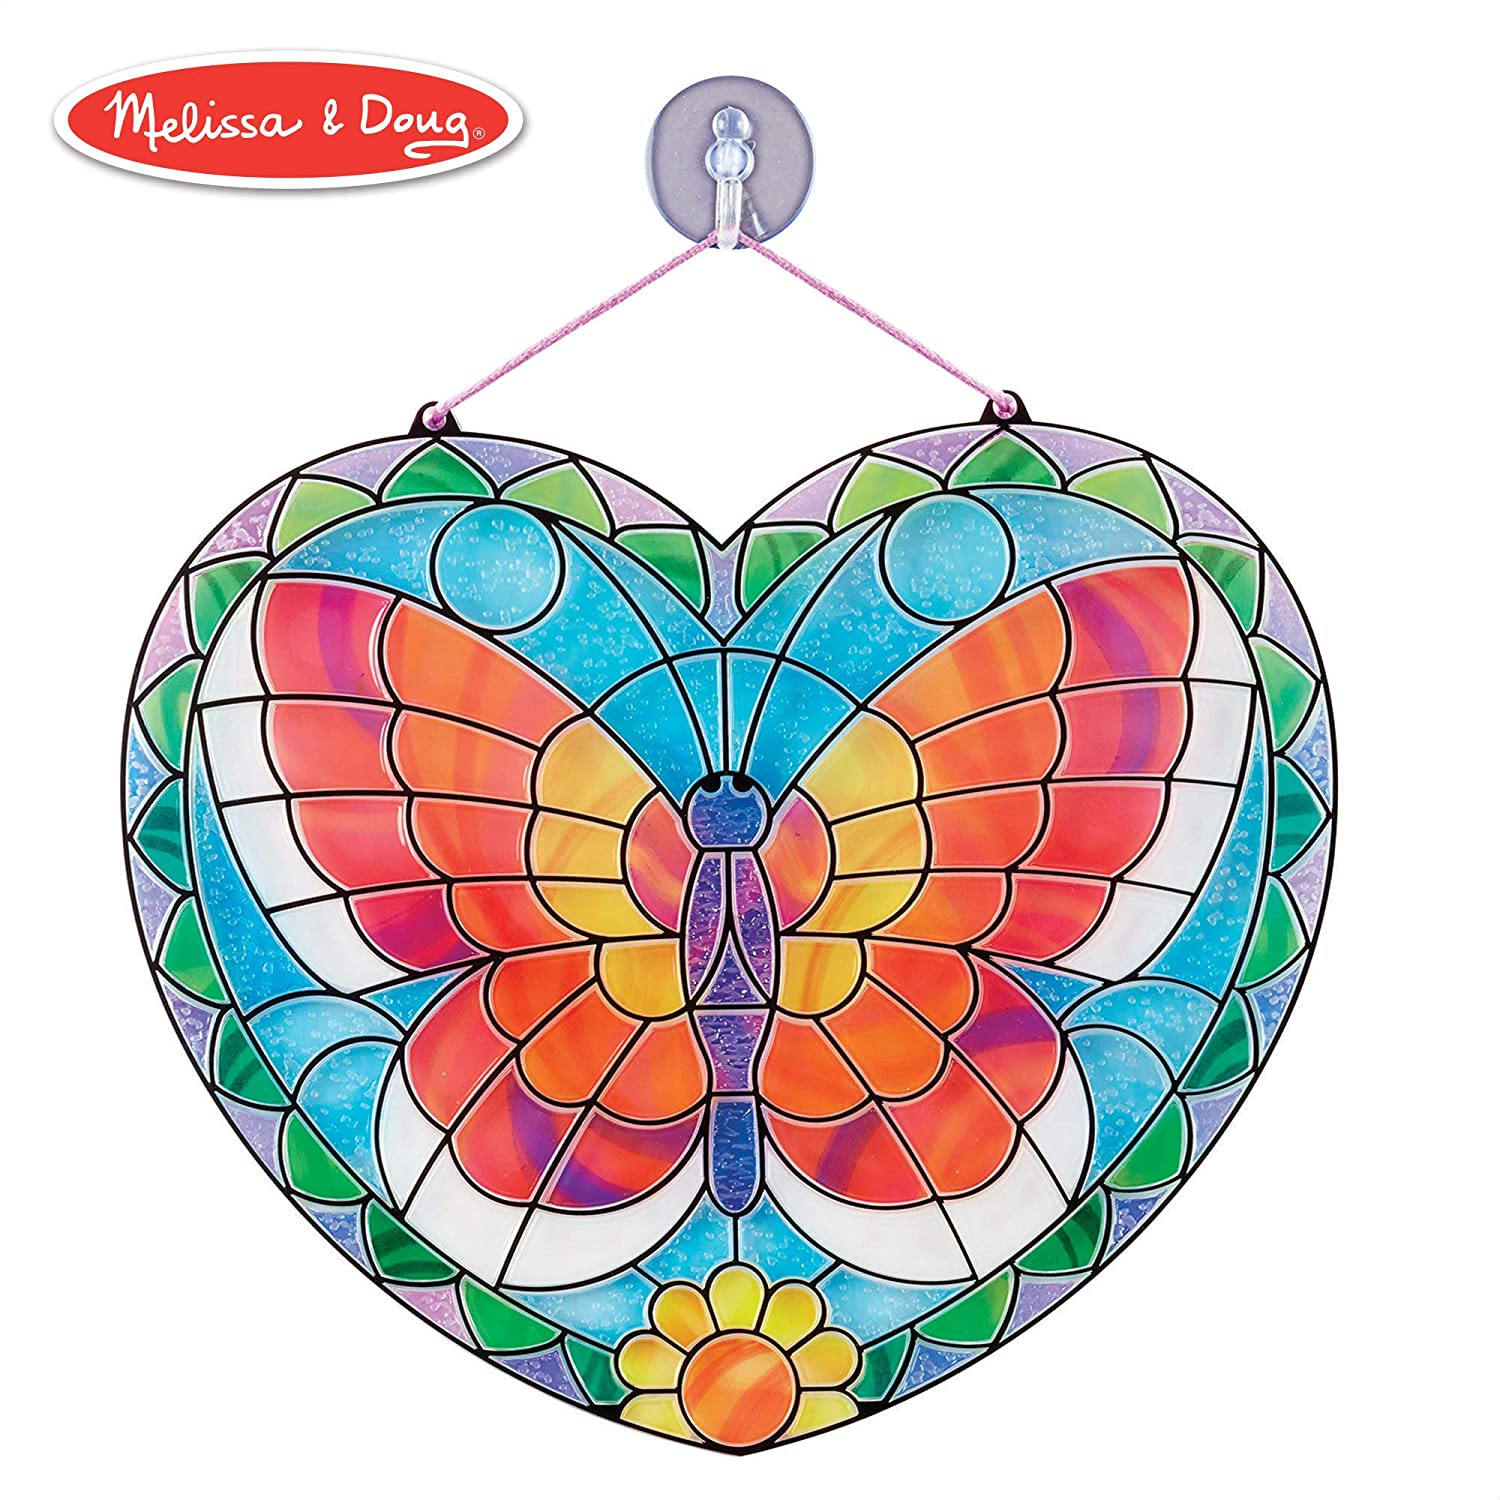 Melissa & Doug Stained Glass Made Easy Activity Kit, Arts and Crafts